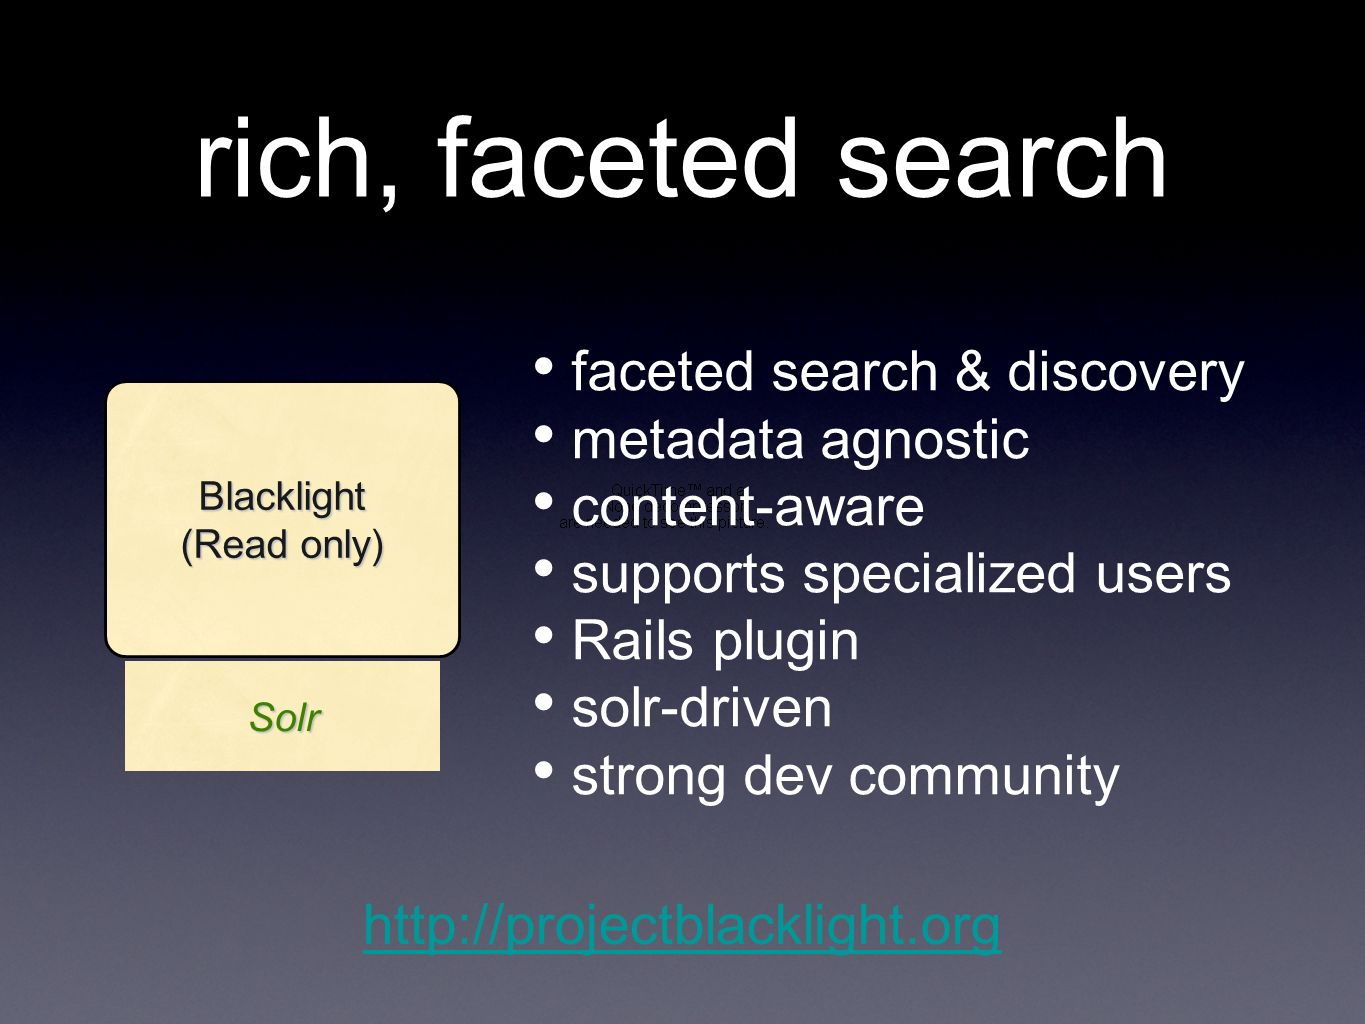 rich, faceted search Blacklight (Read only) Solr faceted search & discovery metadata agnostic content-aware supports specialized users Rails plugin solr-driven strong dev community